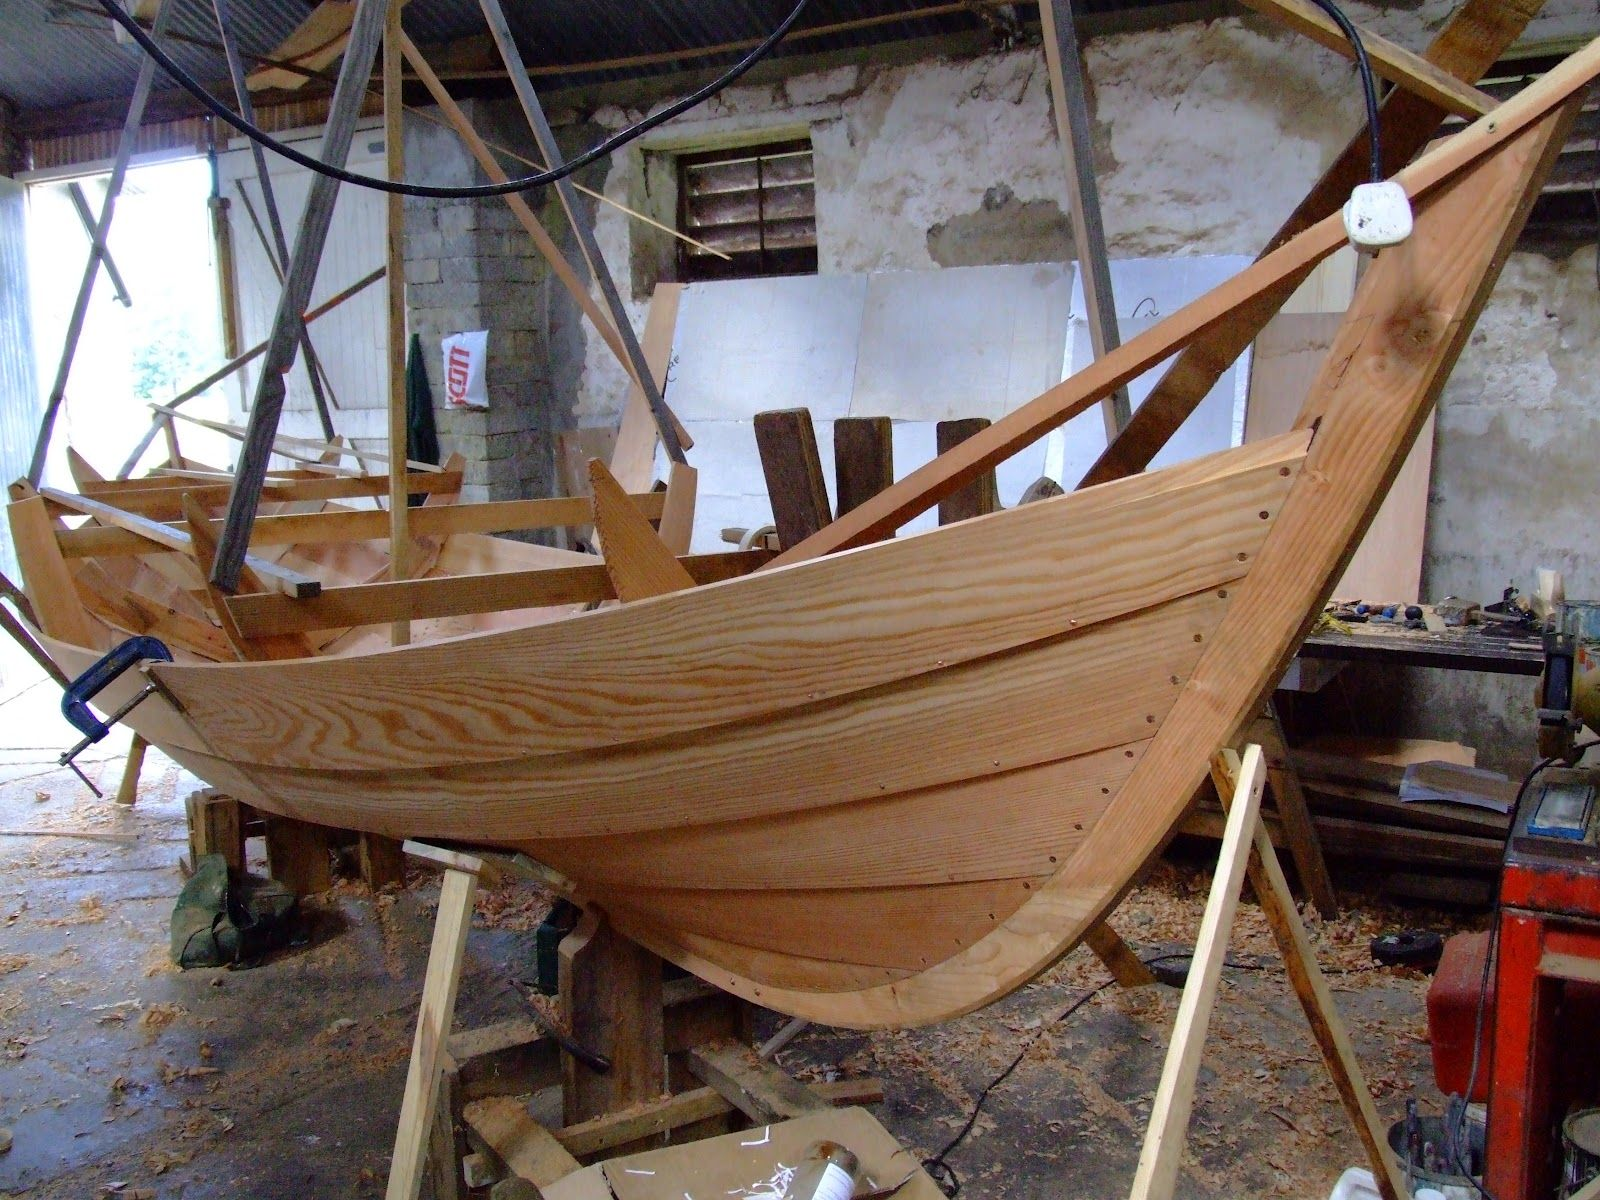 Viking Boats of Ullapool: And now for Something Different ...